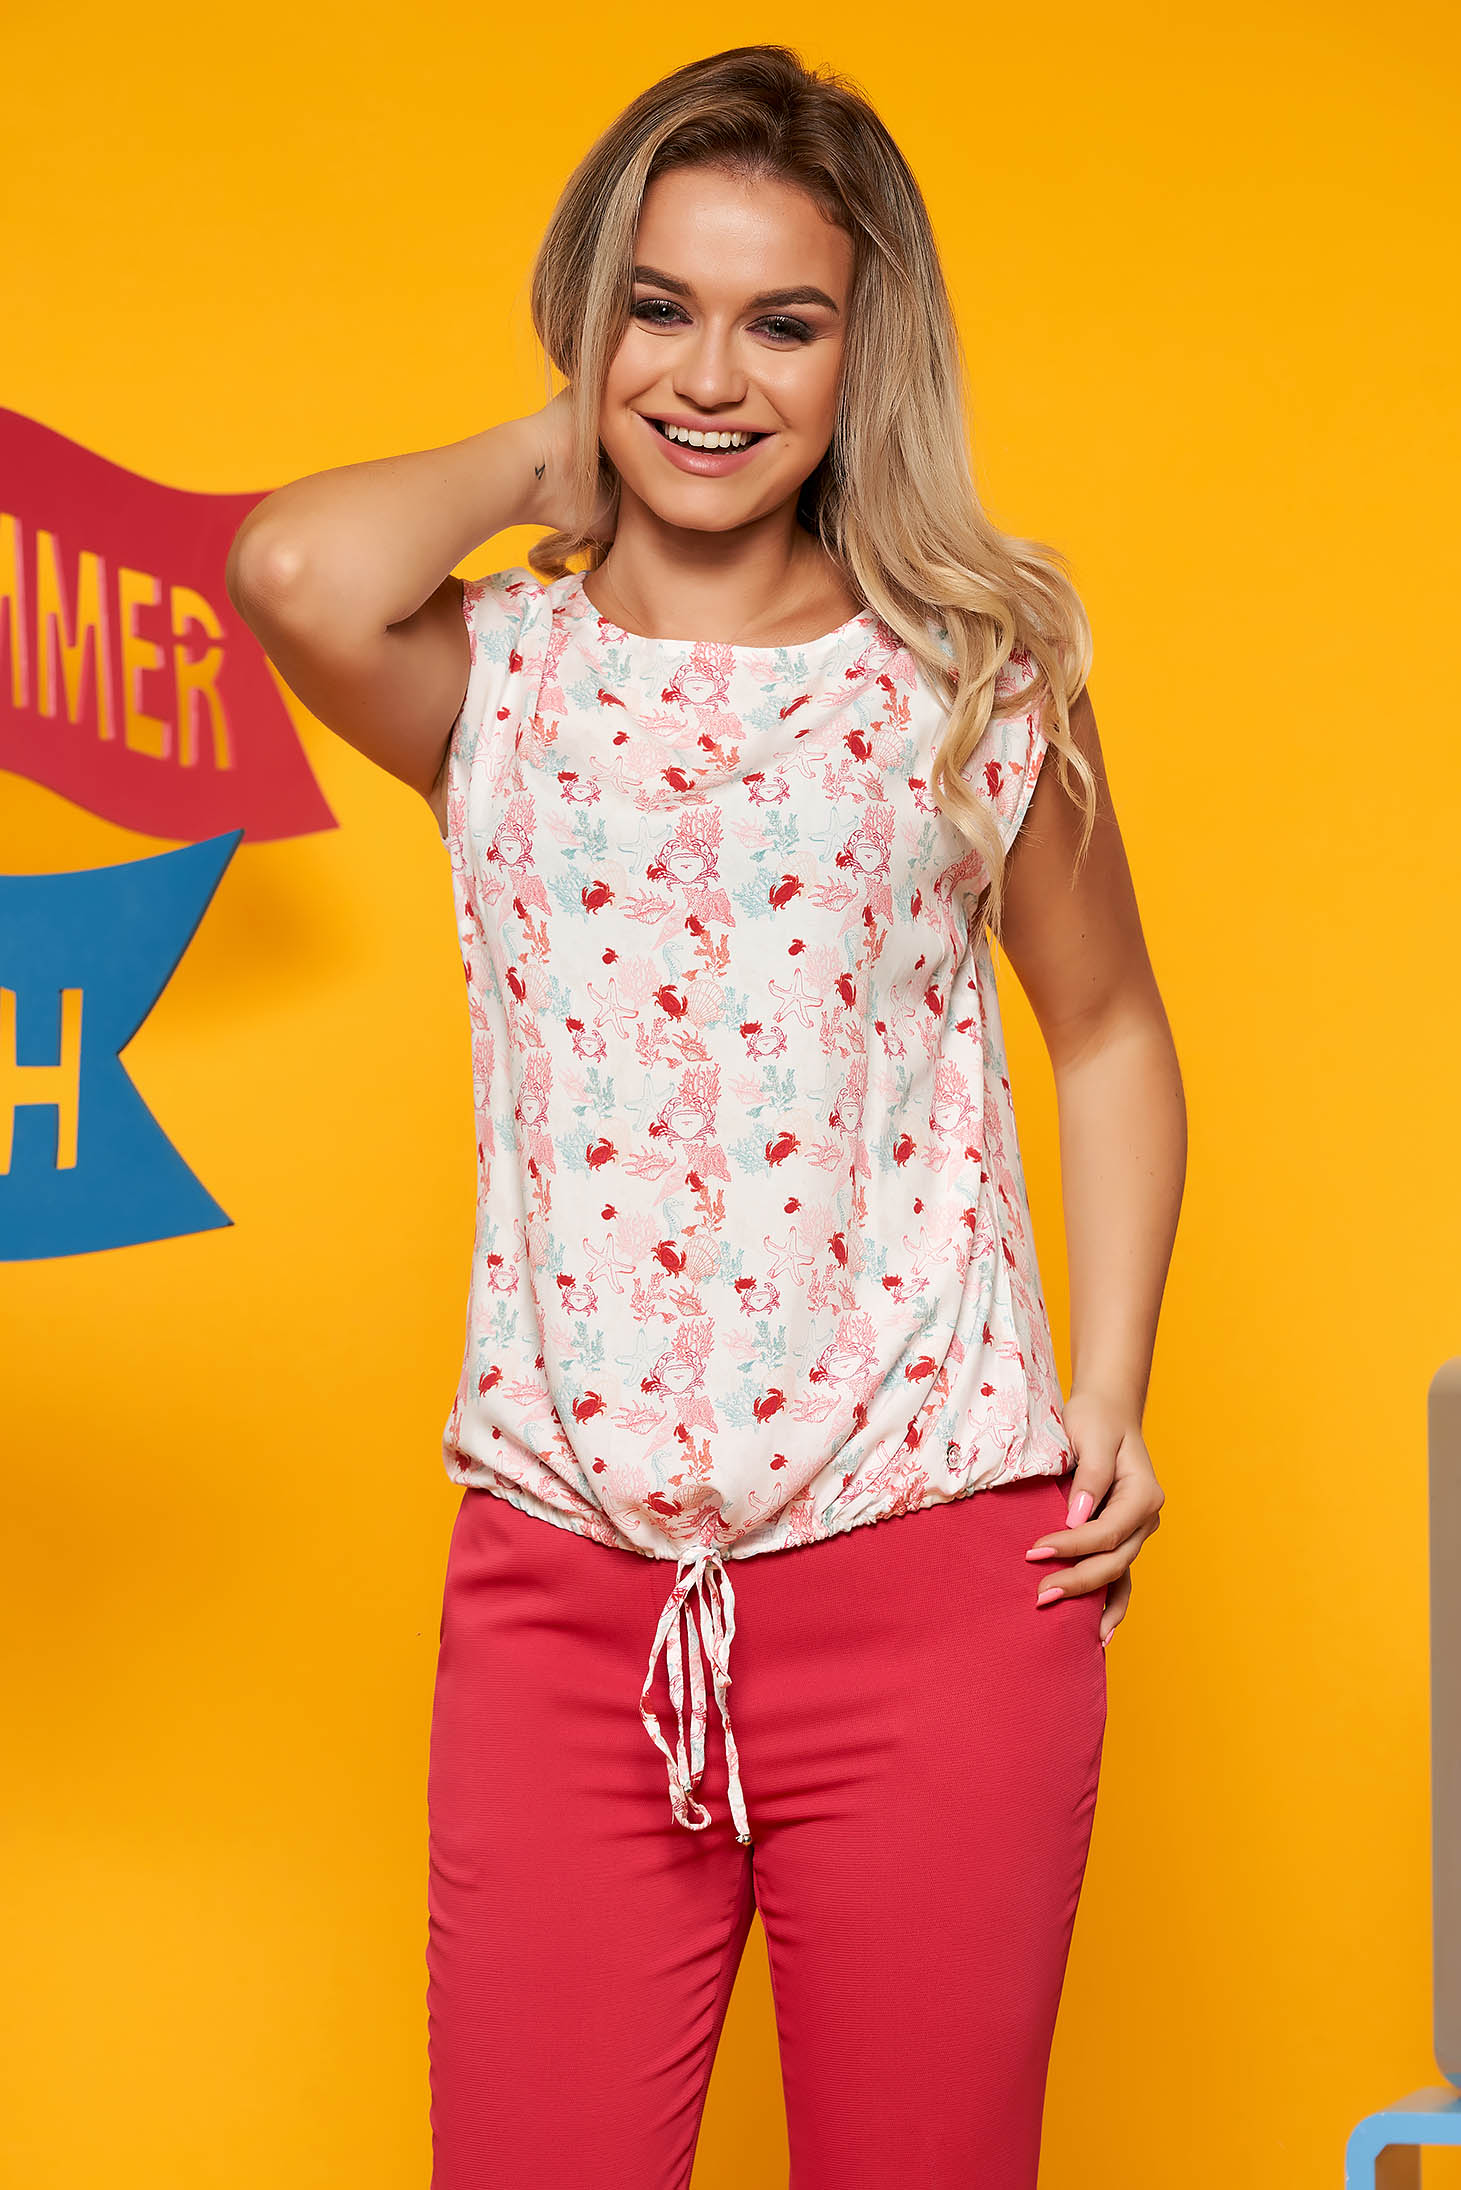 Top Secret white casual flared women`s blouse airy fabric with floral prints is fastened around the waist with a ribbon